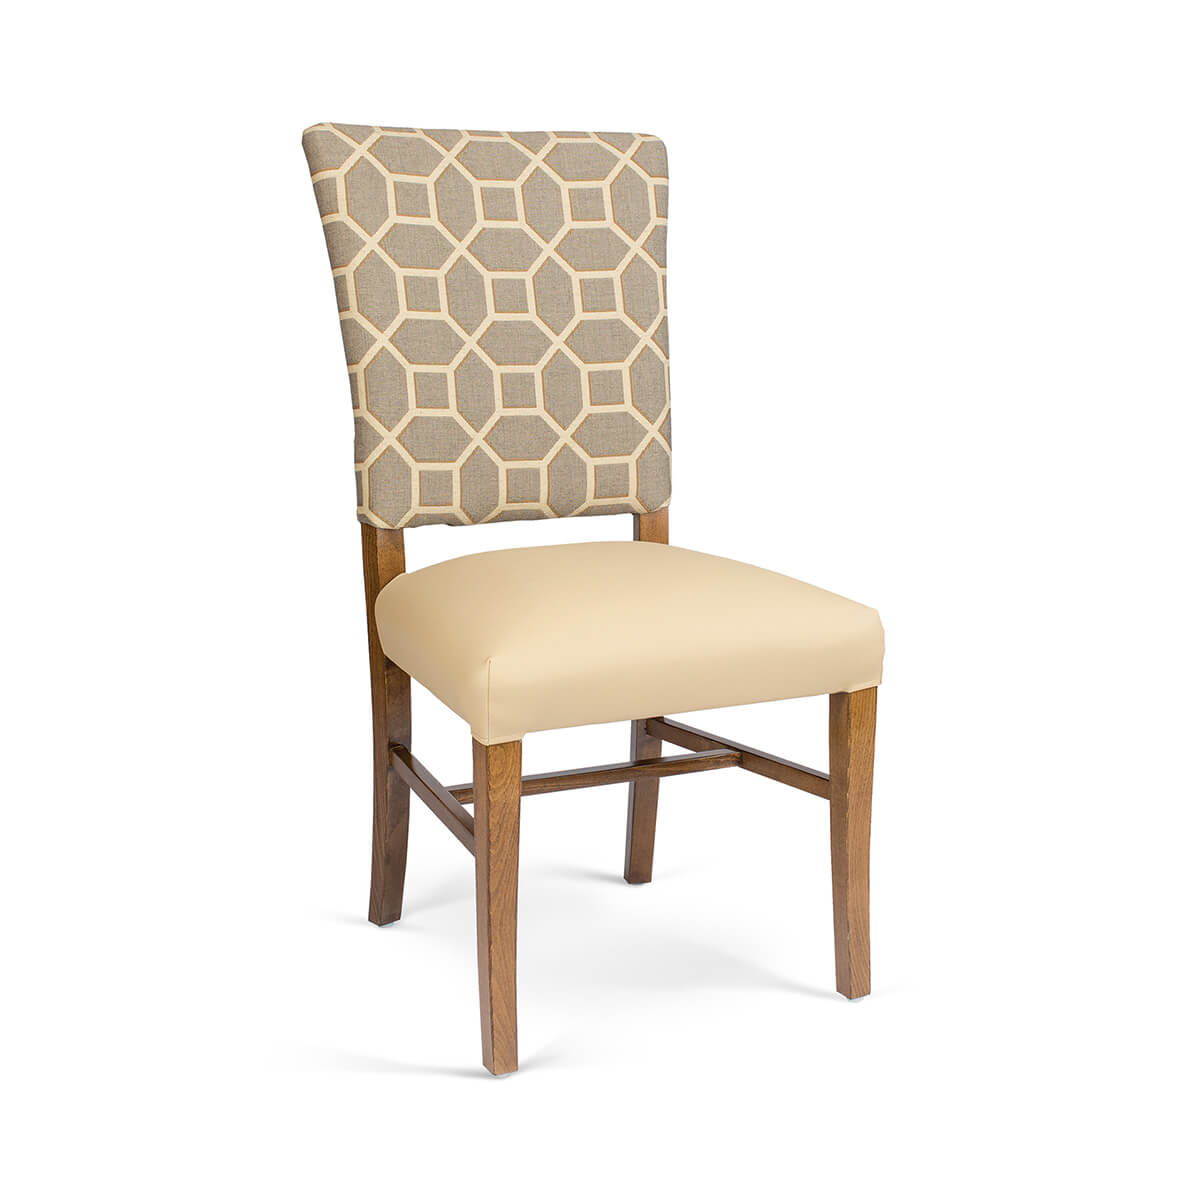 _0000s_0003_Remy Accent Side chair_1920